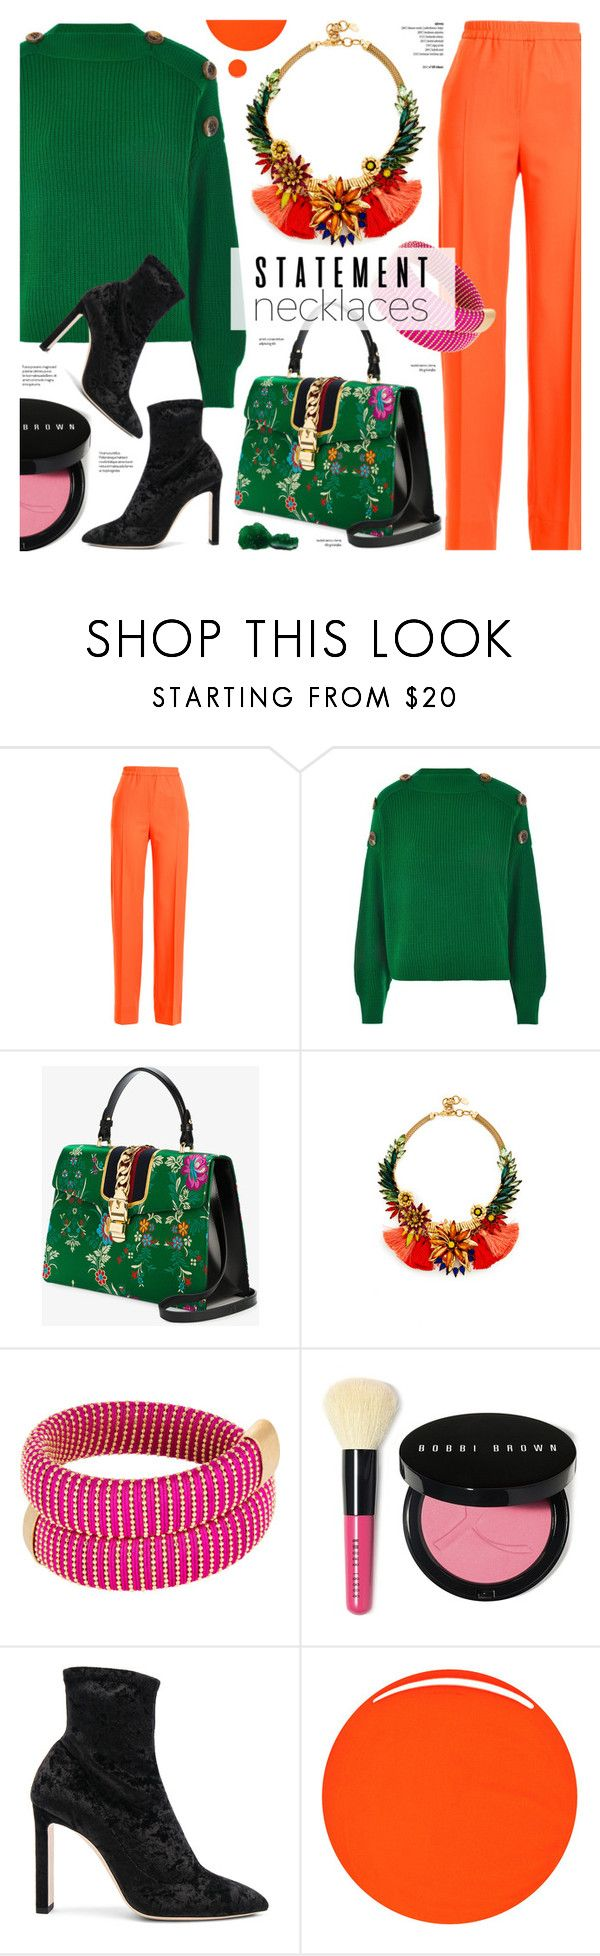 """Street style - Statement necklaces"" by cly88 ❤ liked on Polyvore featuring Jil Sander, Topshop, Gucci, Elizabeth Cole, Bobbi Brown Cosmetics, Jimmy Choo and RGB Cosmetics"